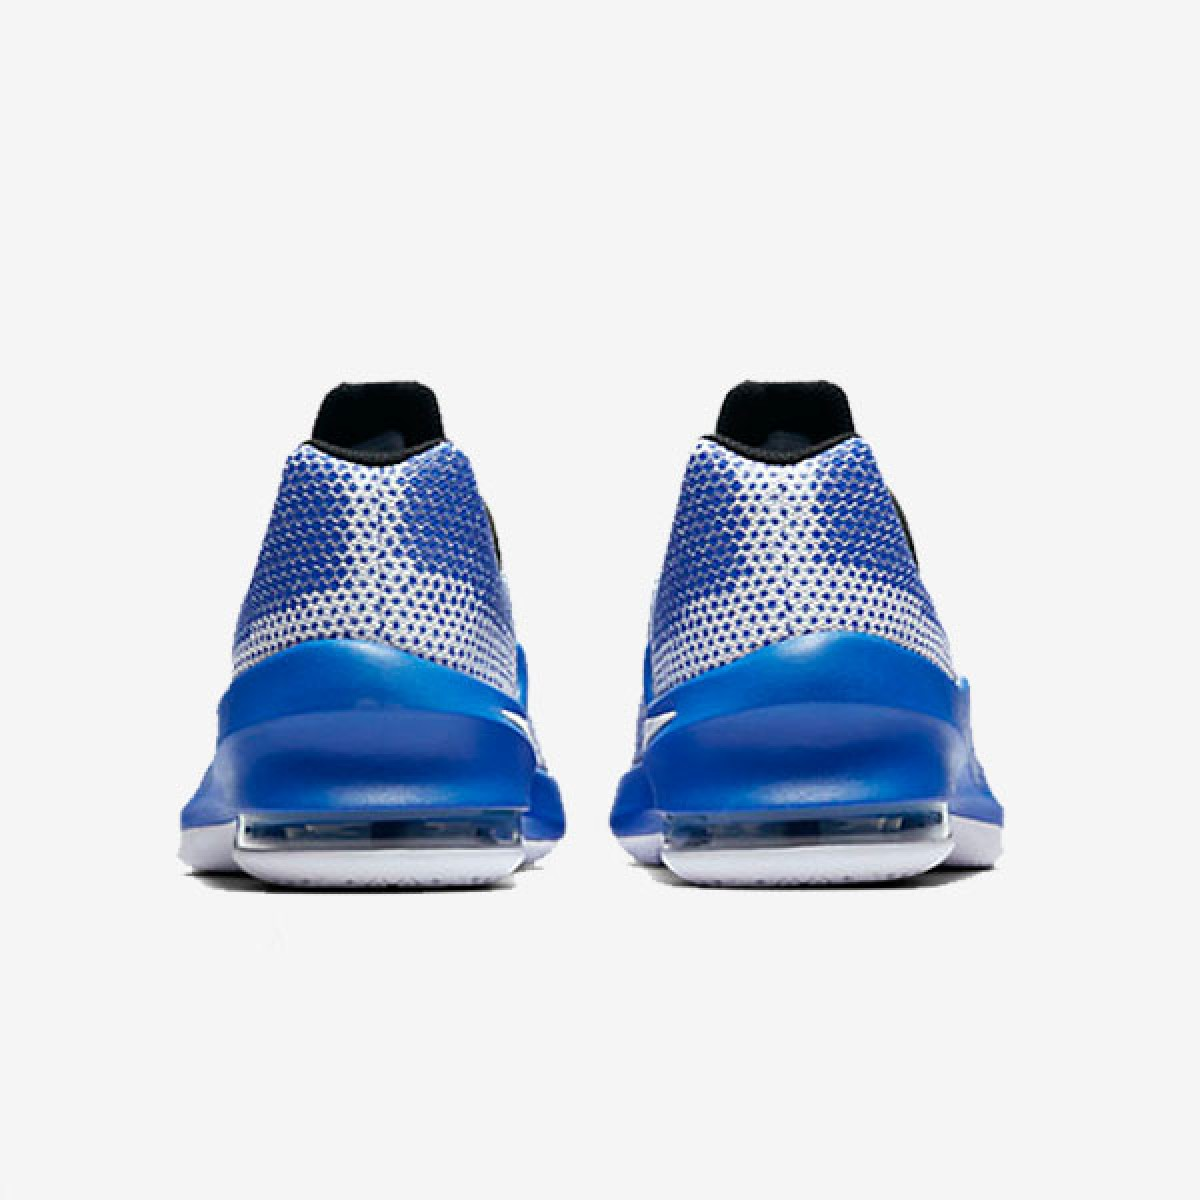 Nike Air Max Infuriate GS 'Photo Blue' 869991-103